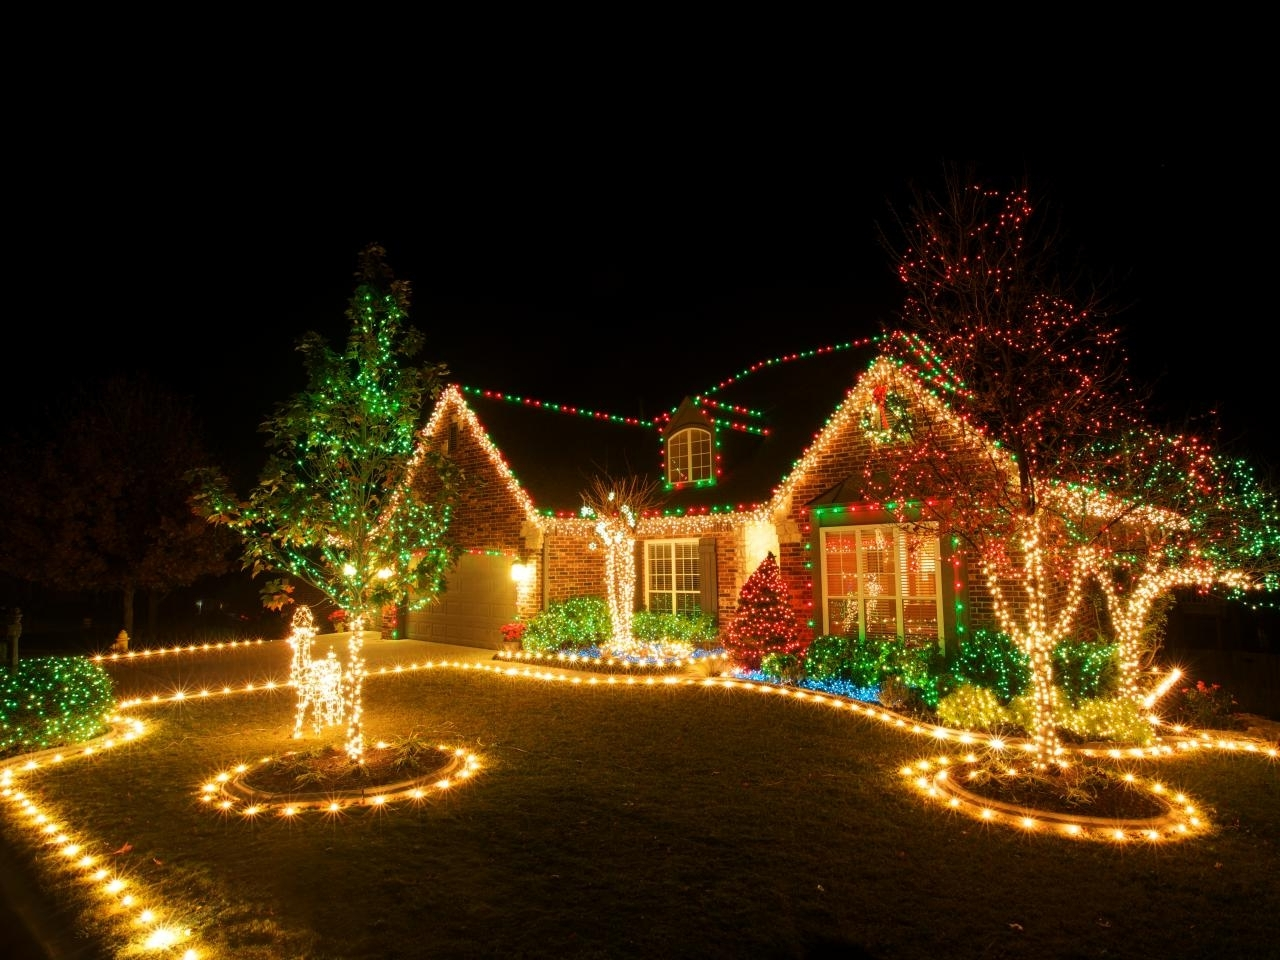 Hanging Outdoor Christmas Lights In Trees Regarding Famous Outdoor Christmas Lights For Tree : 6 Tips For Outdoor Christmas (View 10 of 20)